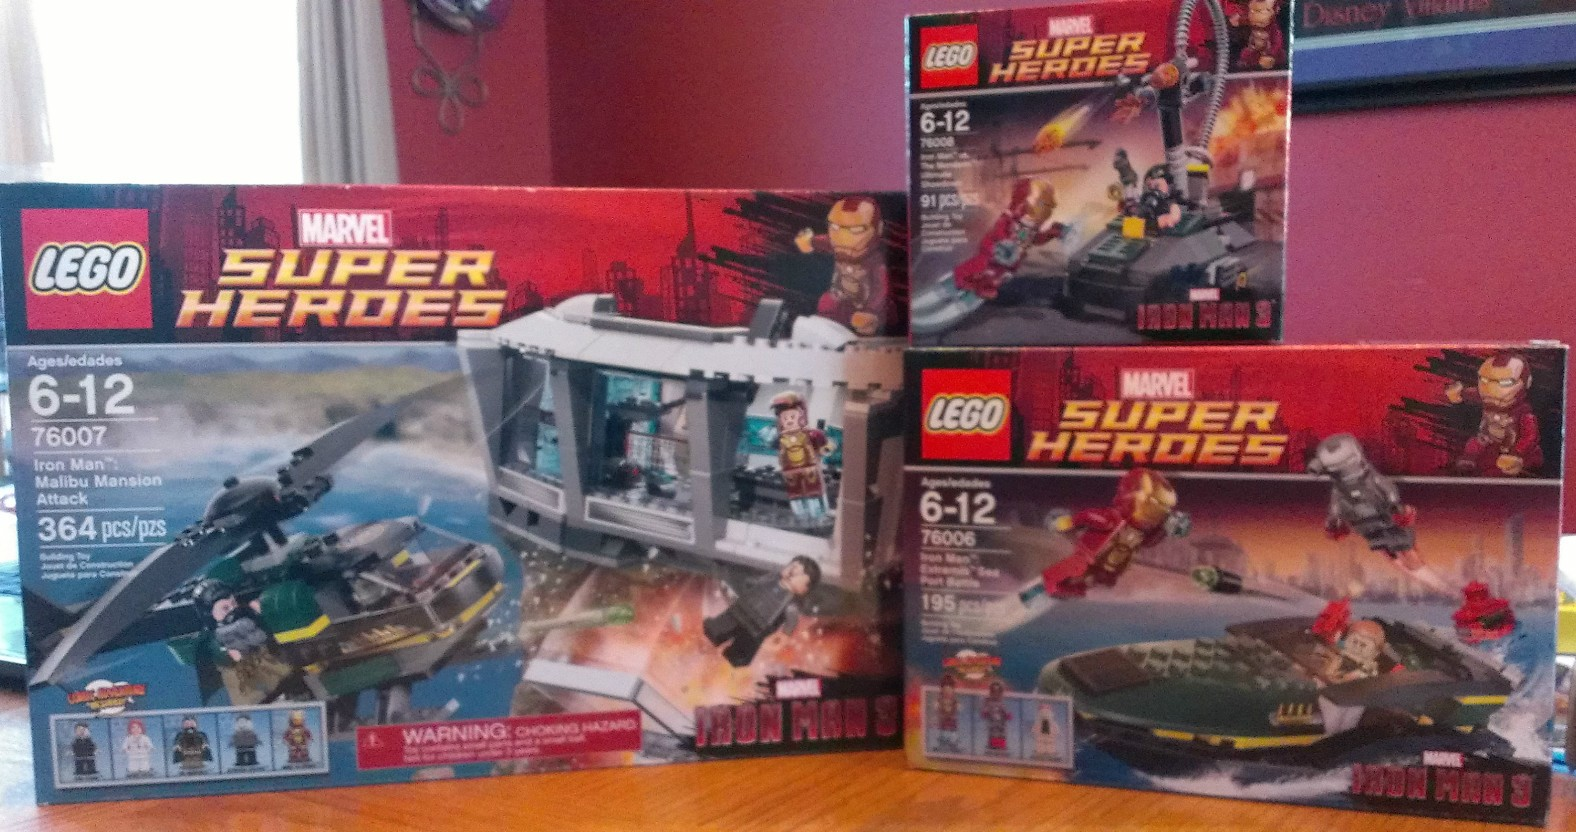 2013 LEGO Superheroes Iron Man 3 Sets Released In Stores Early